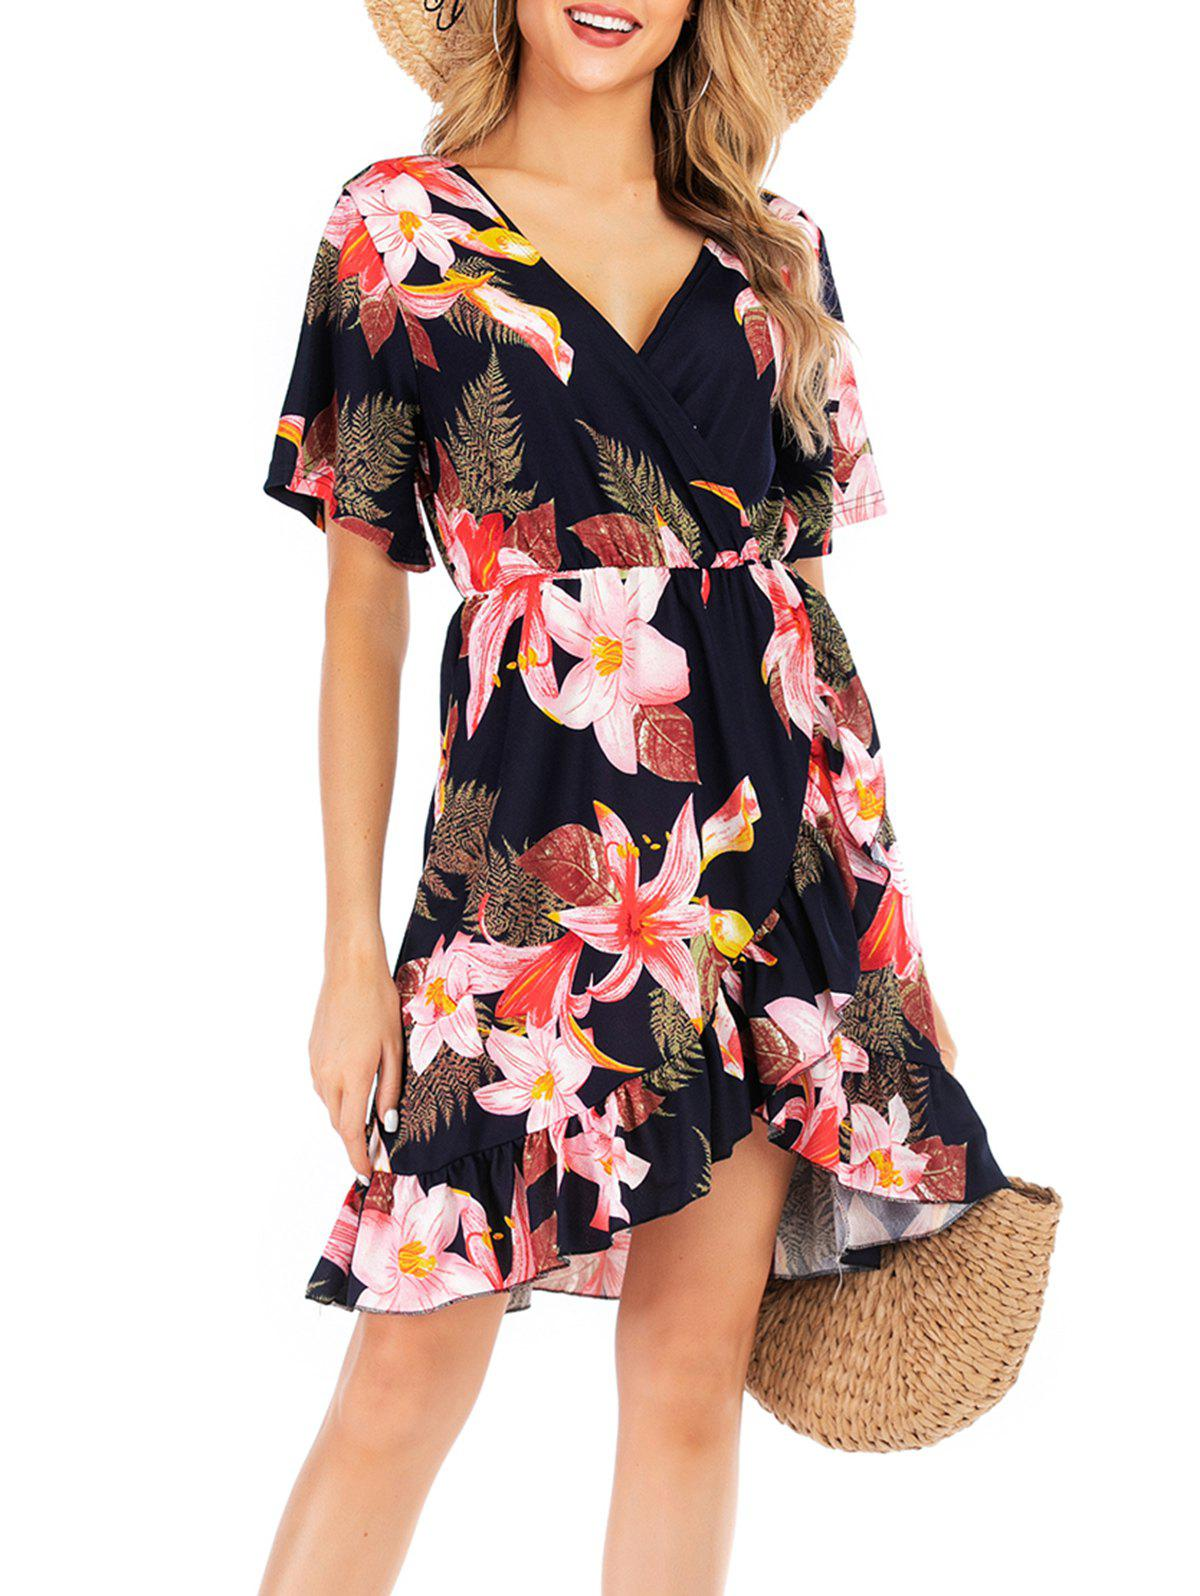 Chic Floral Print Low Cut Ruffle Dress